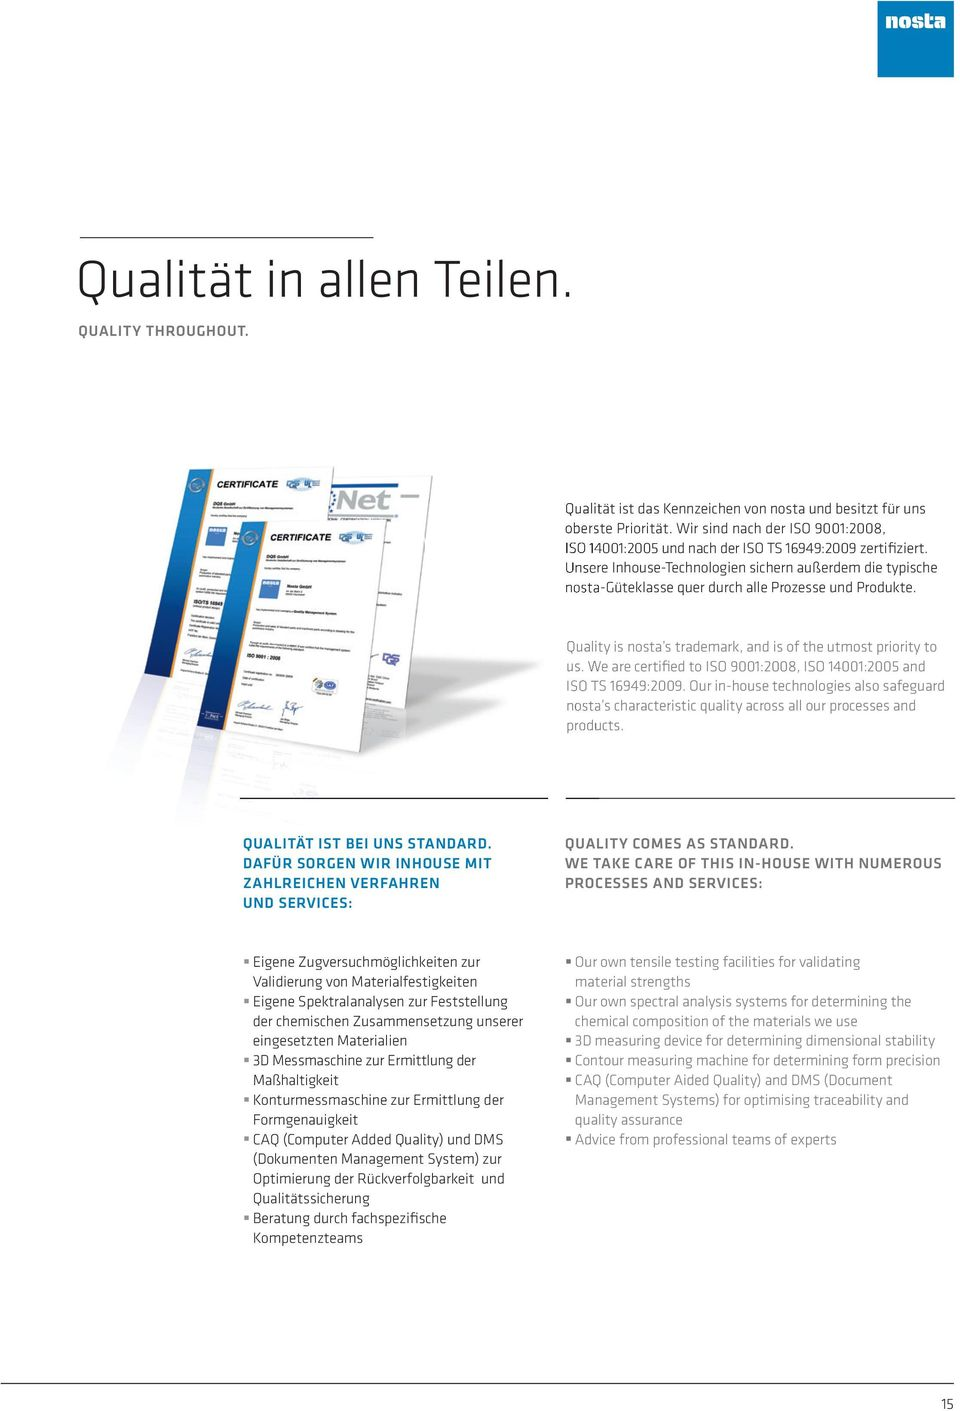 Unsere Inhouse-Technologien sichern außerdem die typische nosta-güteklasse quer durch alle Prozesse und Produkte. Quality is nosta s trademark, and is of the utmost priority to us.